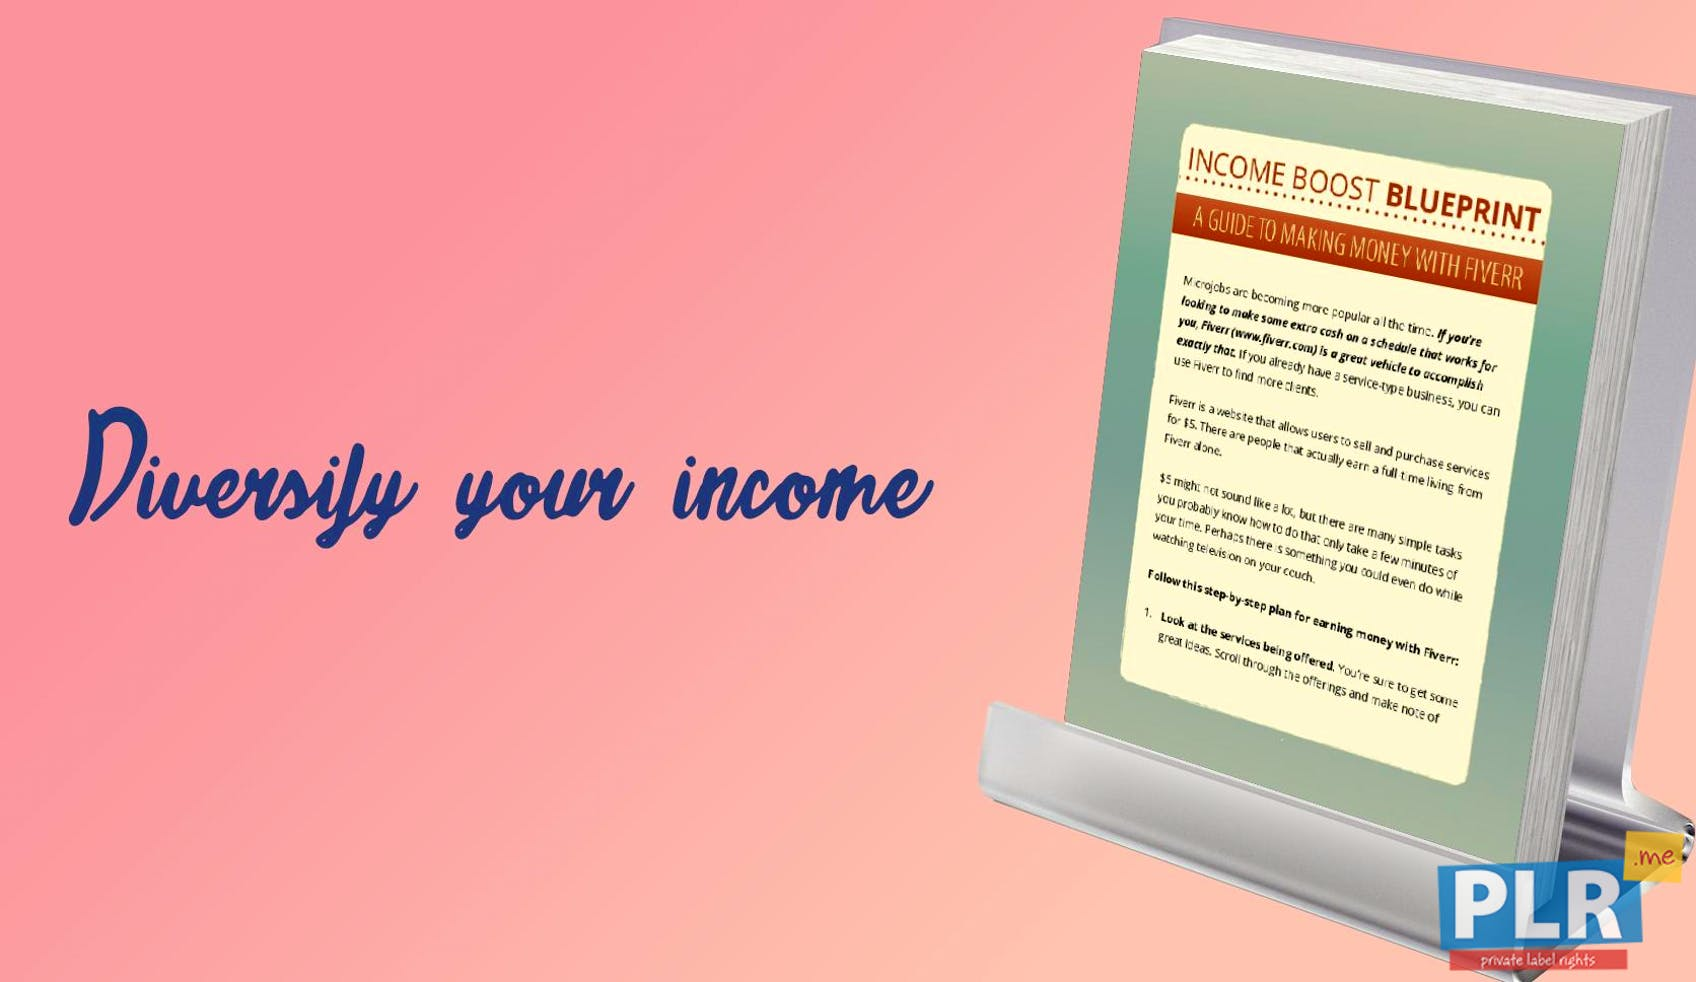 Plr action guides coaching handouts lead magnets income boost income boost blueprint make money with fiverr malvernweather Image collections